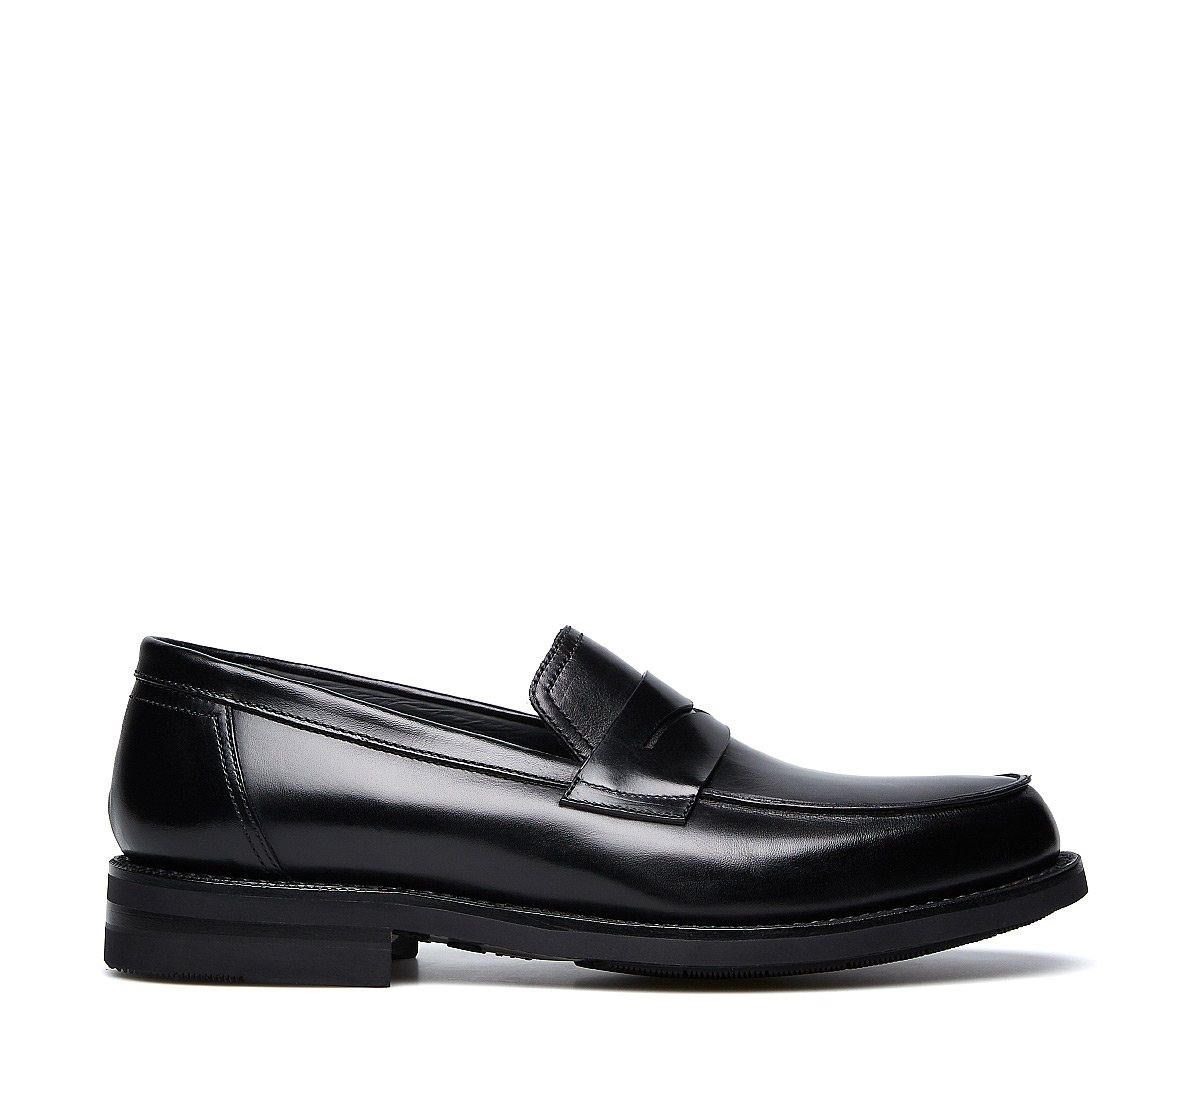 Flex Goodyear moccasins in exquisite calfskin